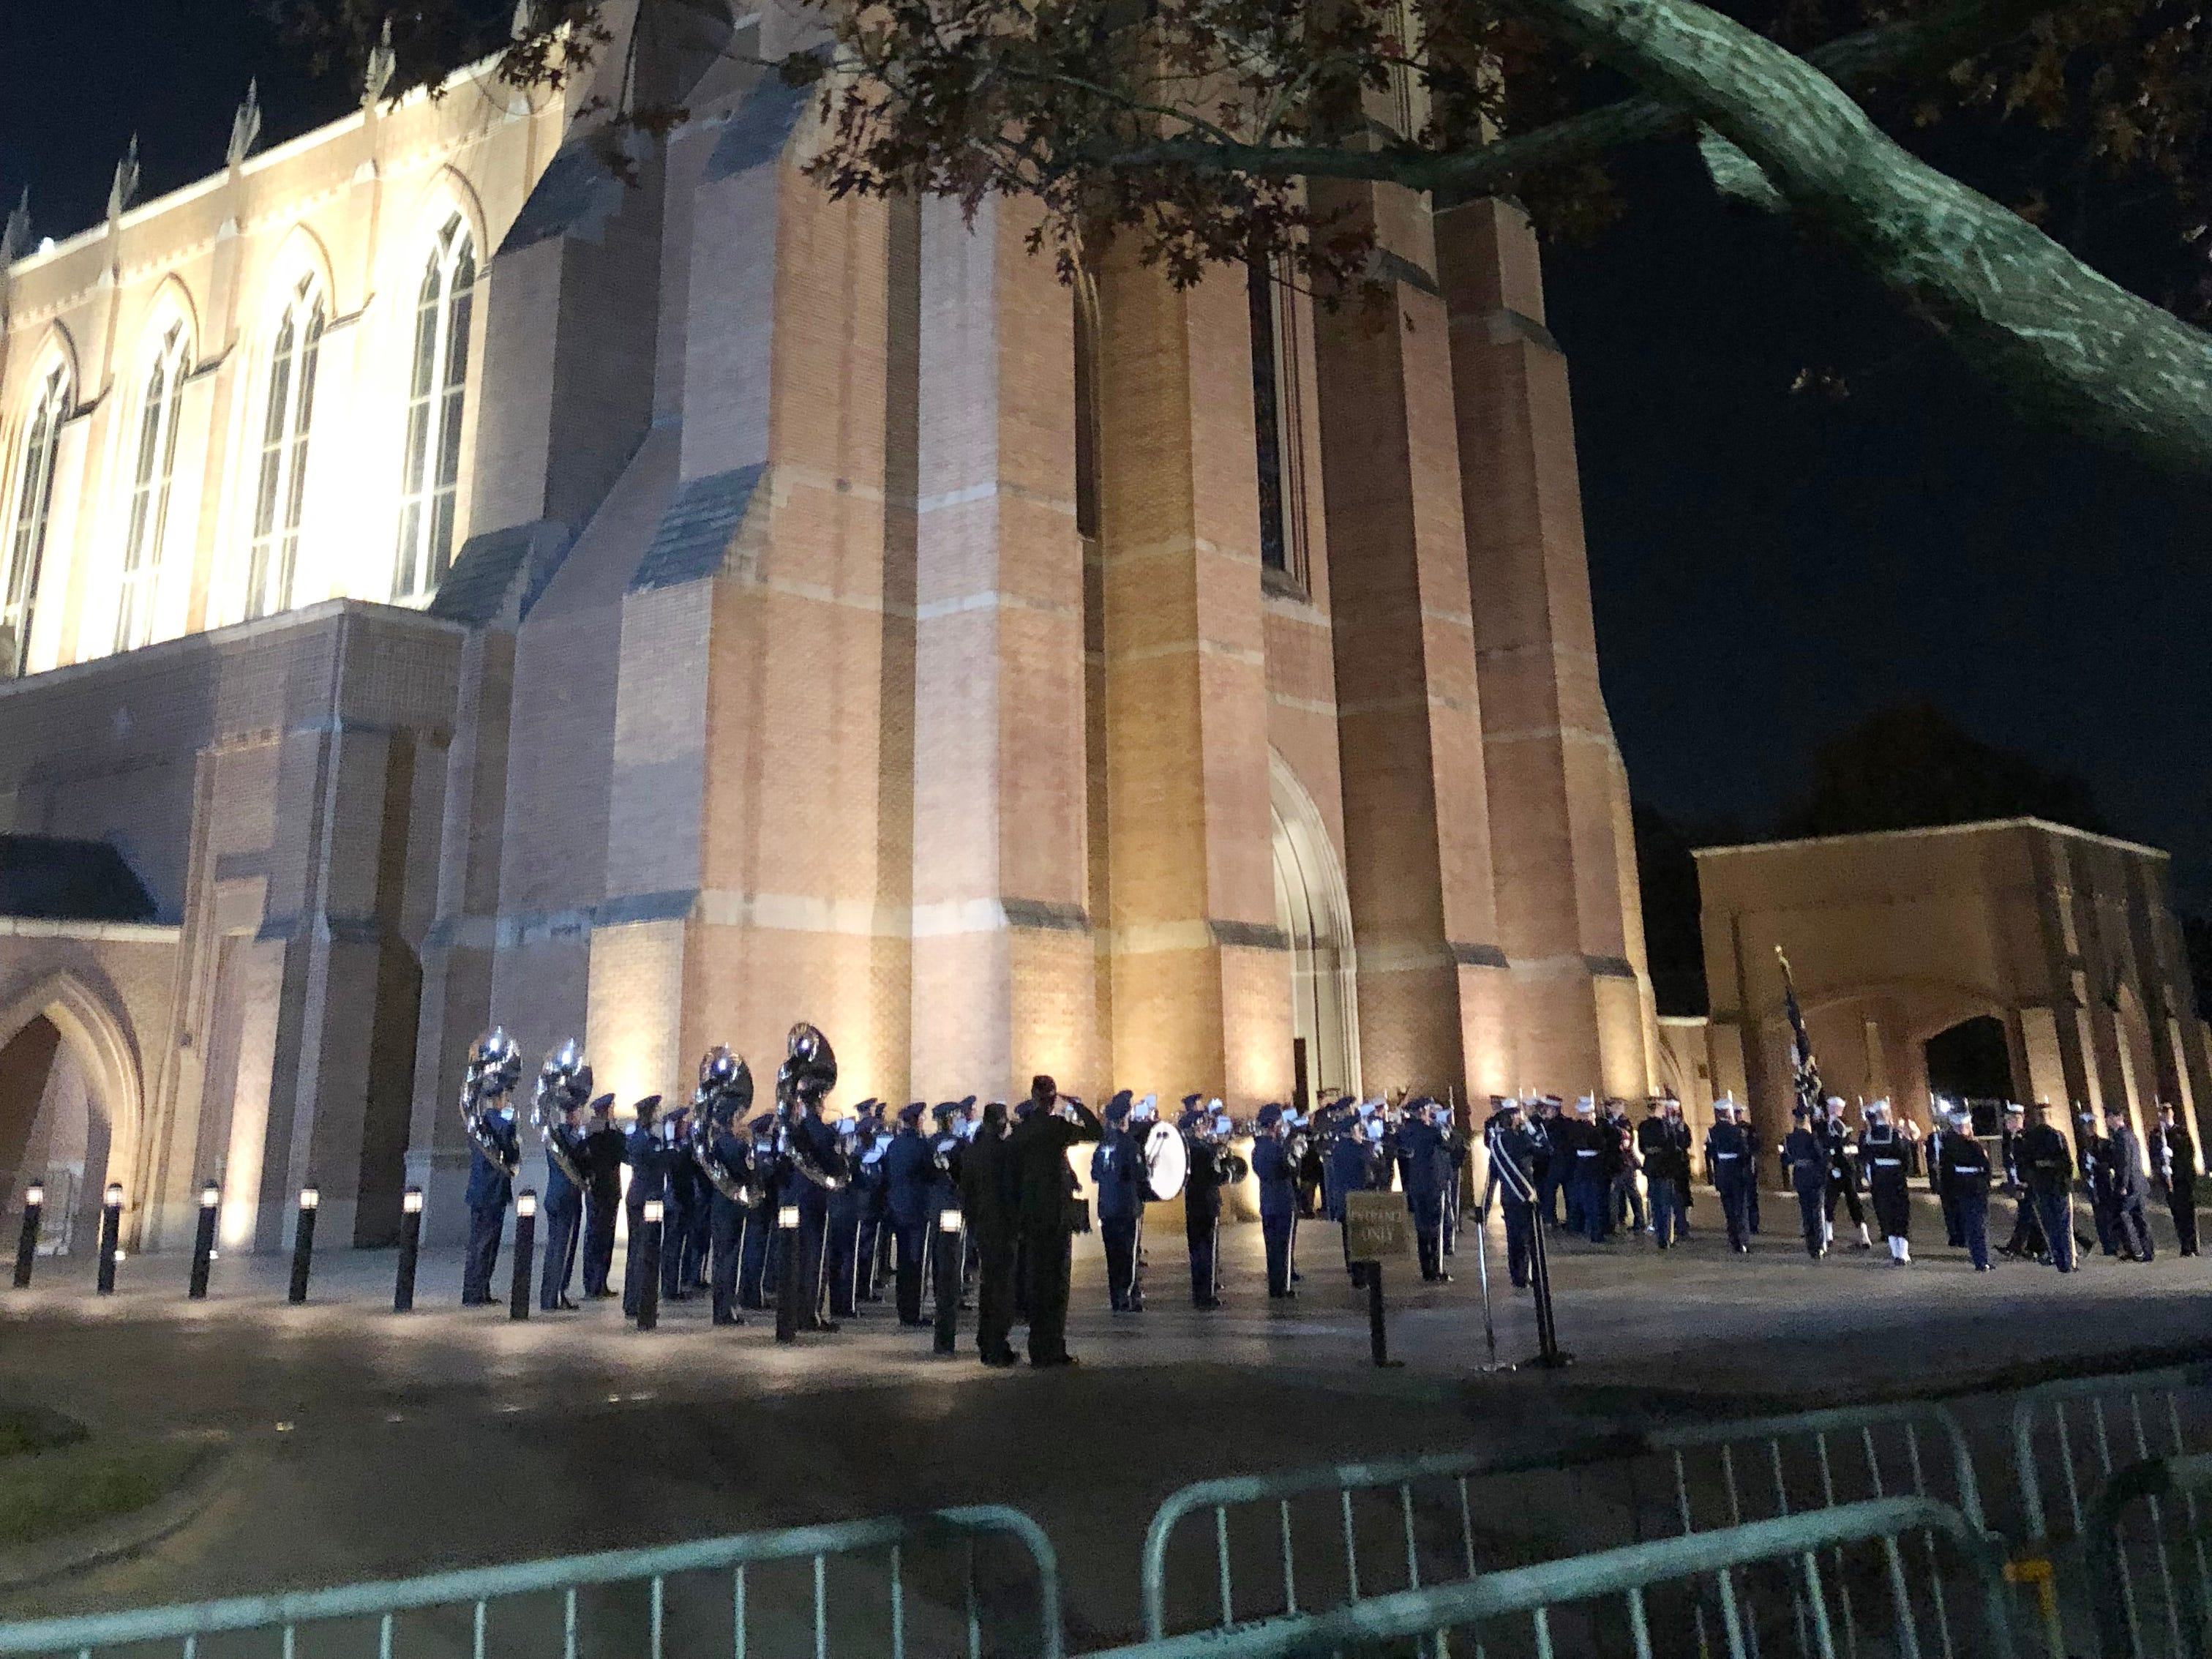 The flag-draped casket of George H.W. Bush is led inside St. Martin's Episcopal Church after a military band played Hail to the Chief. The church in Houston's upscale Tanglewood neighborhood, was the spiritual home to the Bush family for more than 50 years.